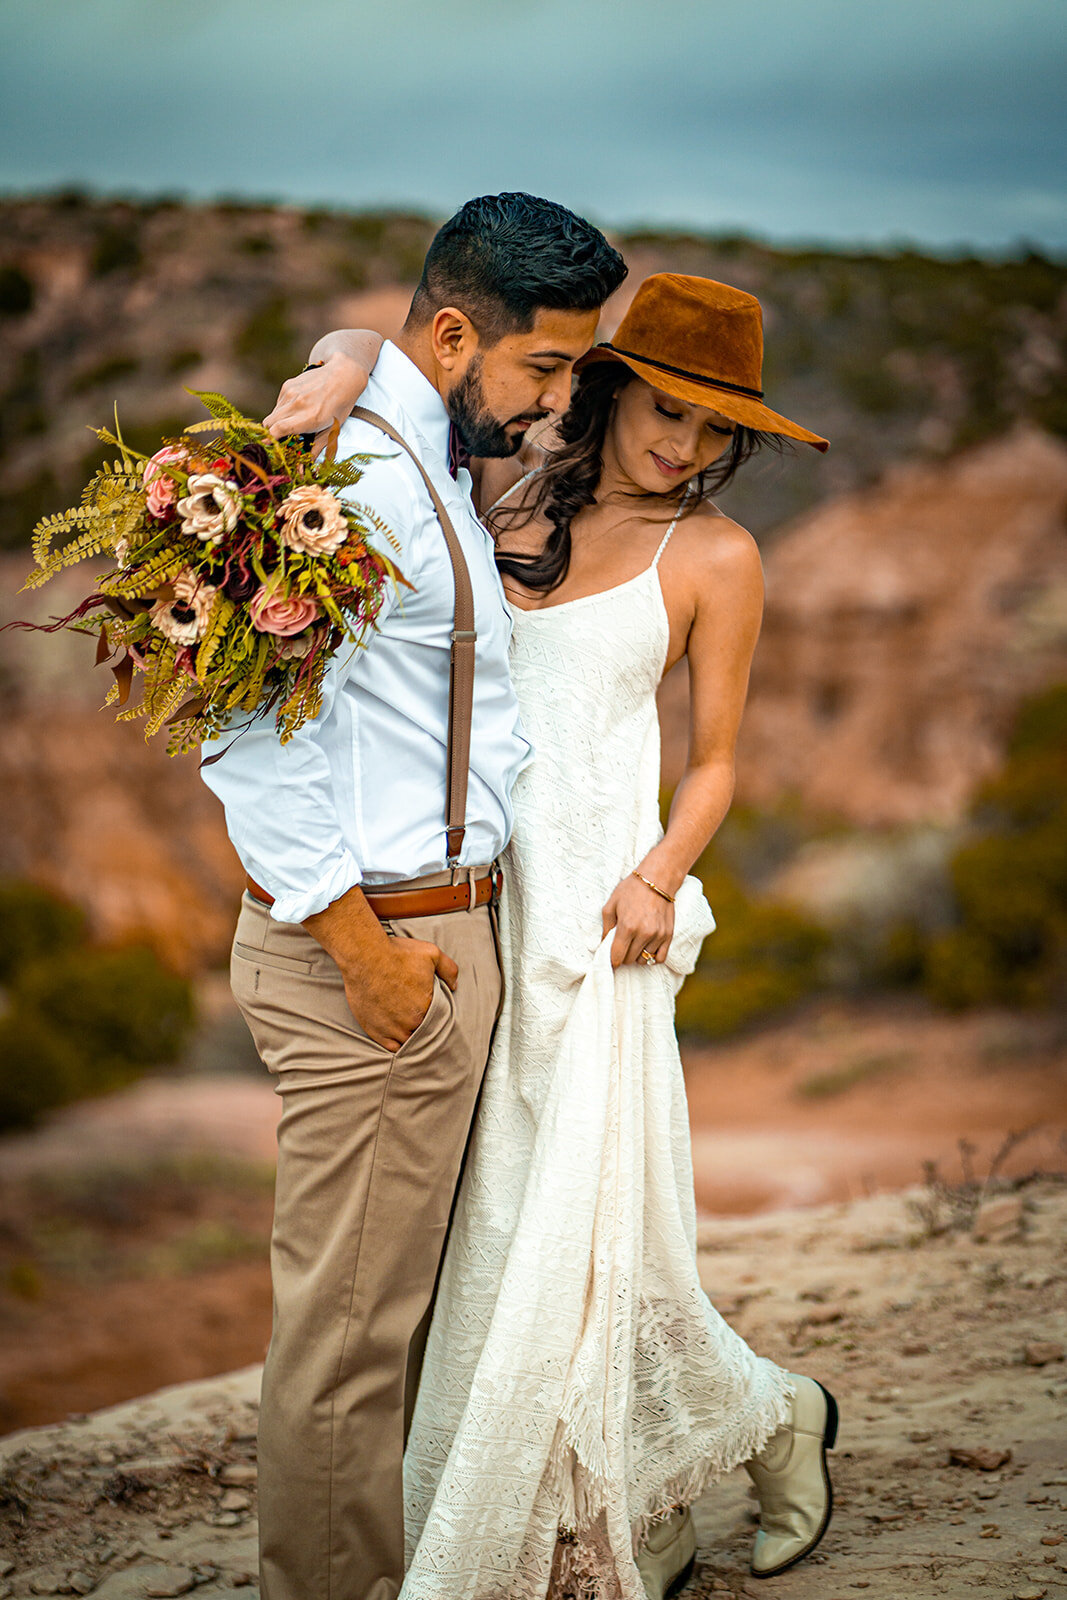 Lili_and_David_2020_Canyon_and_Pine_PaloDuro-57